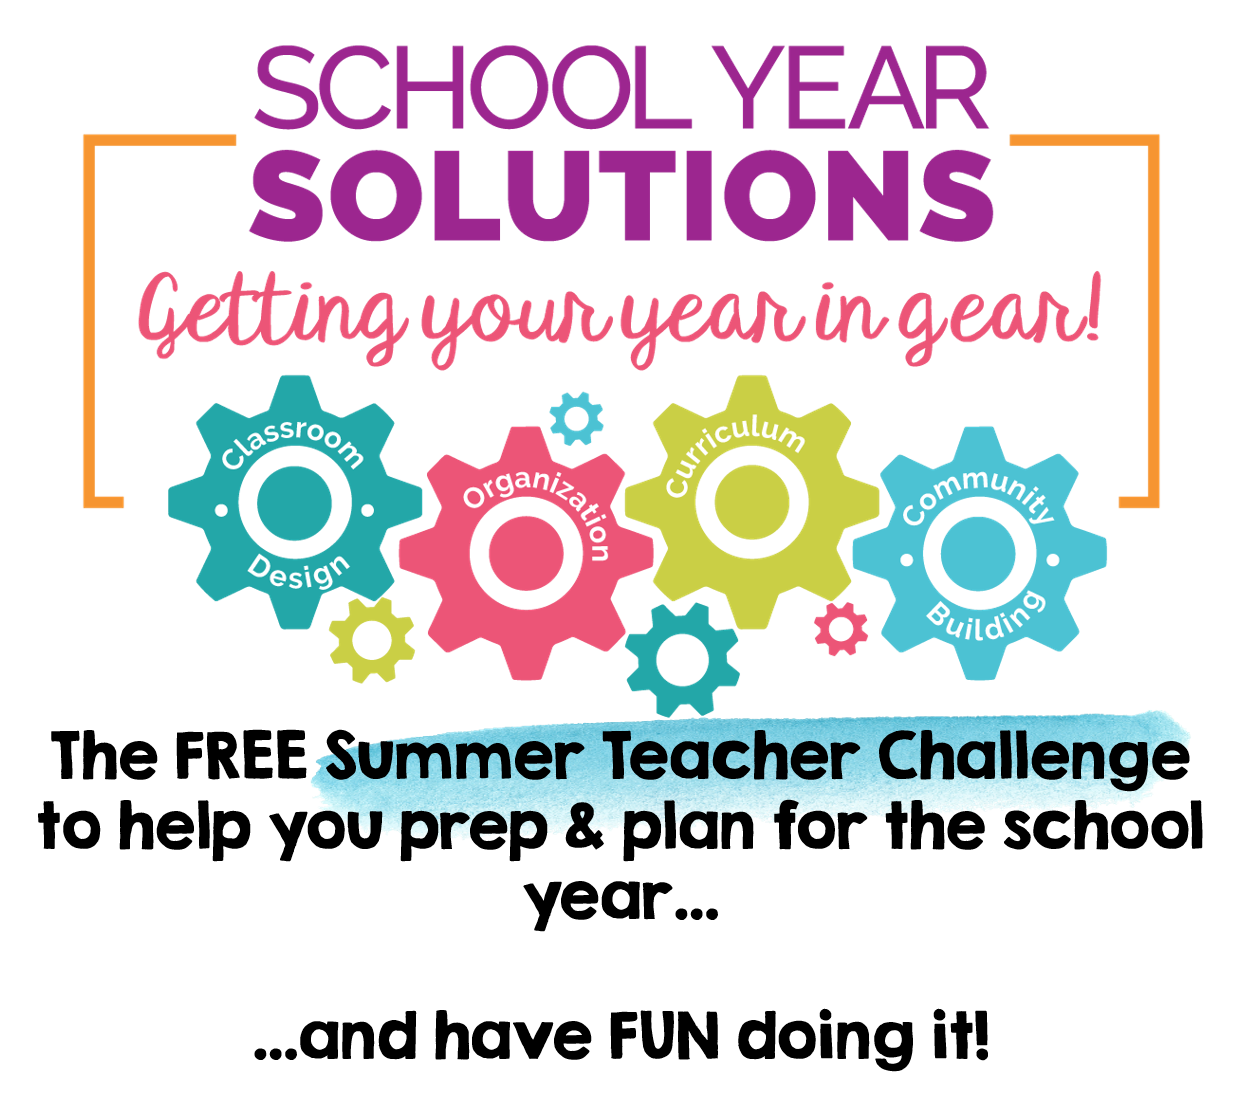 Want a Stress-free start to the school year? - Join 1,000's of teacher already getting their year in gear in the FREE Summer Teacher Challenge!  You'll learn how to intentionally map out your school year from start to finish and get inspired along the way!  Click below to sign up for the challenge for FREE!